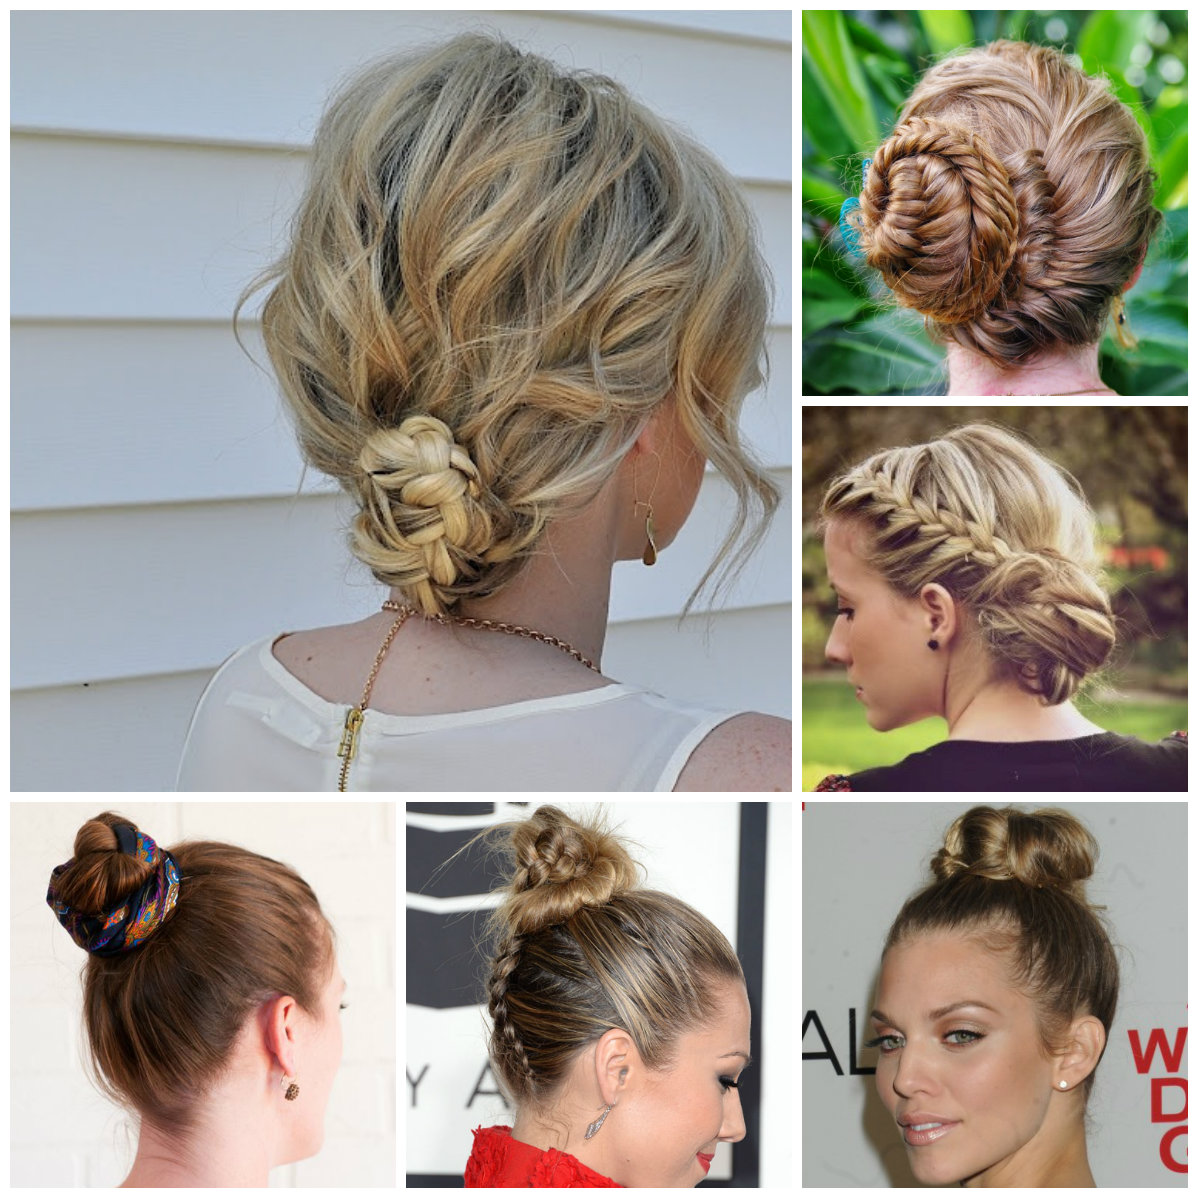 cute braided bun hairstyles 2016 | 2017 haircuts, hairstyles and